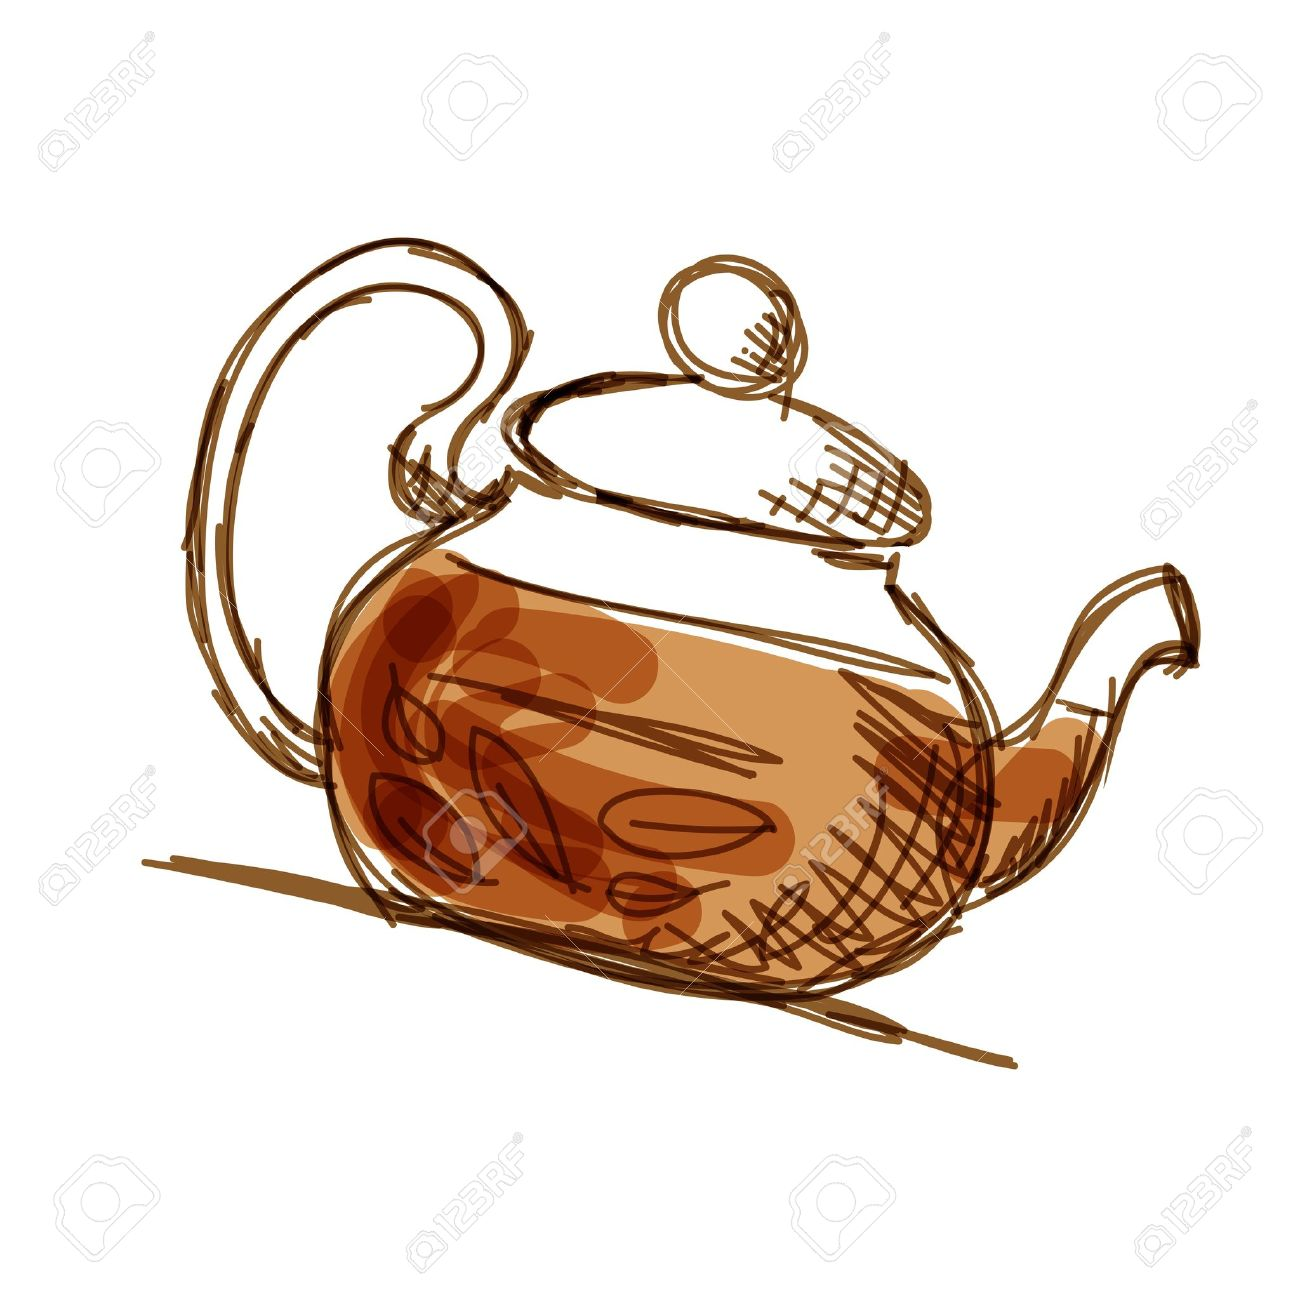 1300x1300 Teapot Sketch With Green Tea For Your Design Royalty Free Cliparts